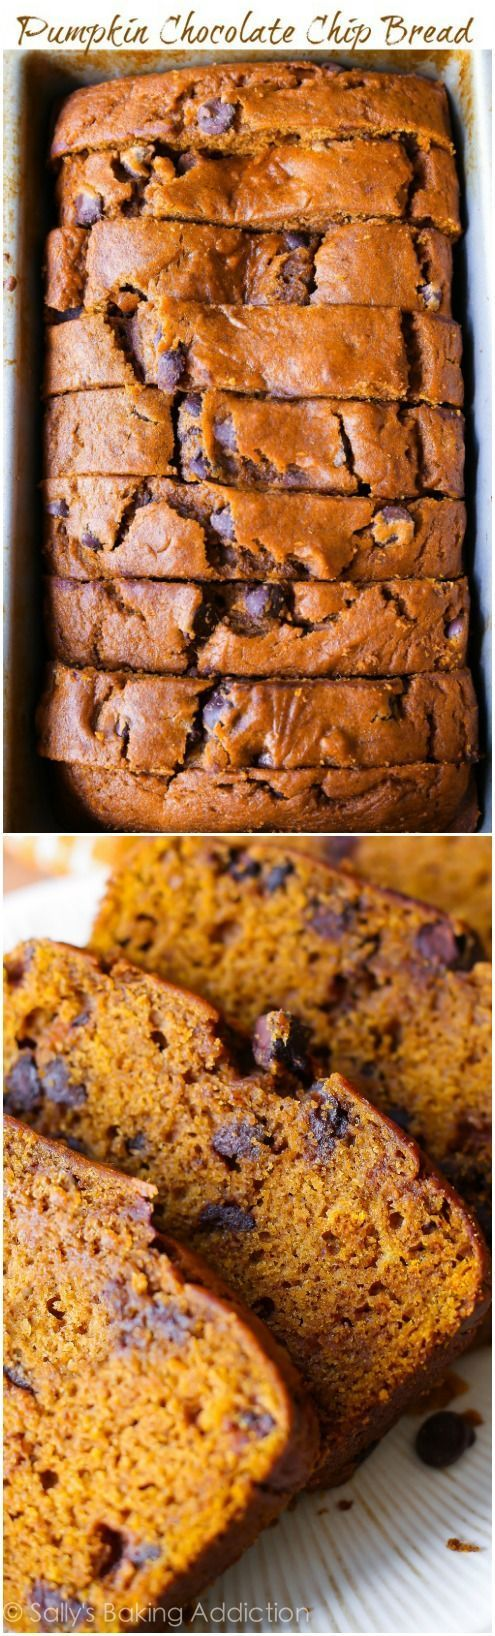 My favorite recipe for pumpkin bread! Freezes beautifully. The flavor is outstanding and it's so moist!